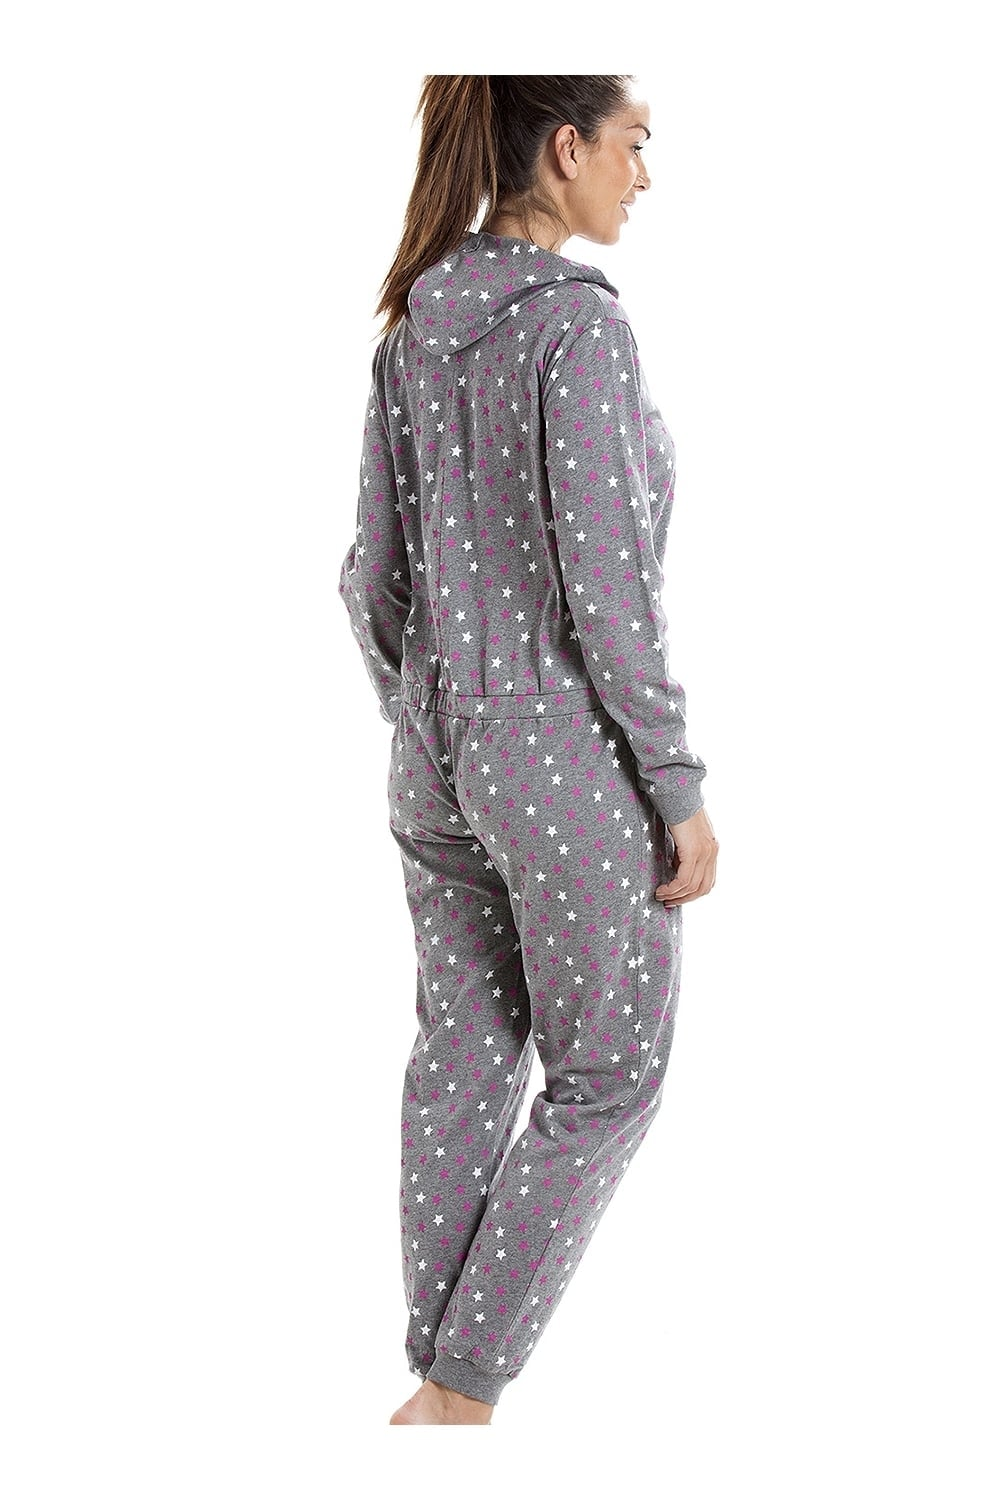 99912455641 Camille Various Colour Cotton Star Print Hooded All In One Onesie